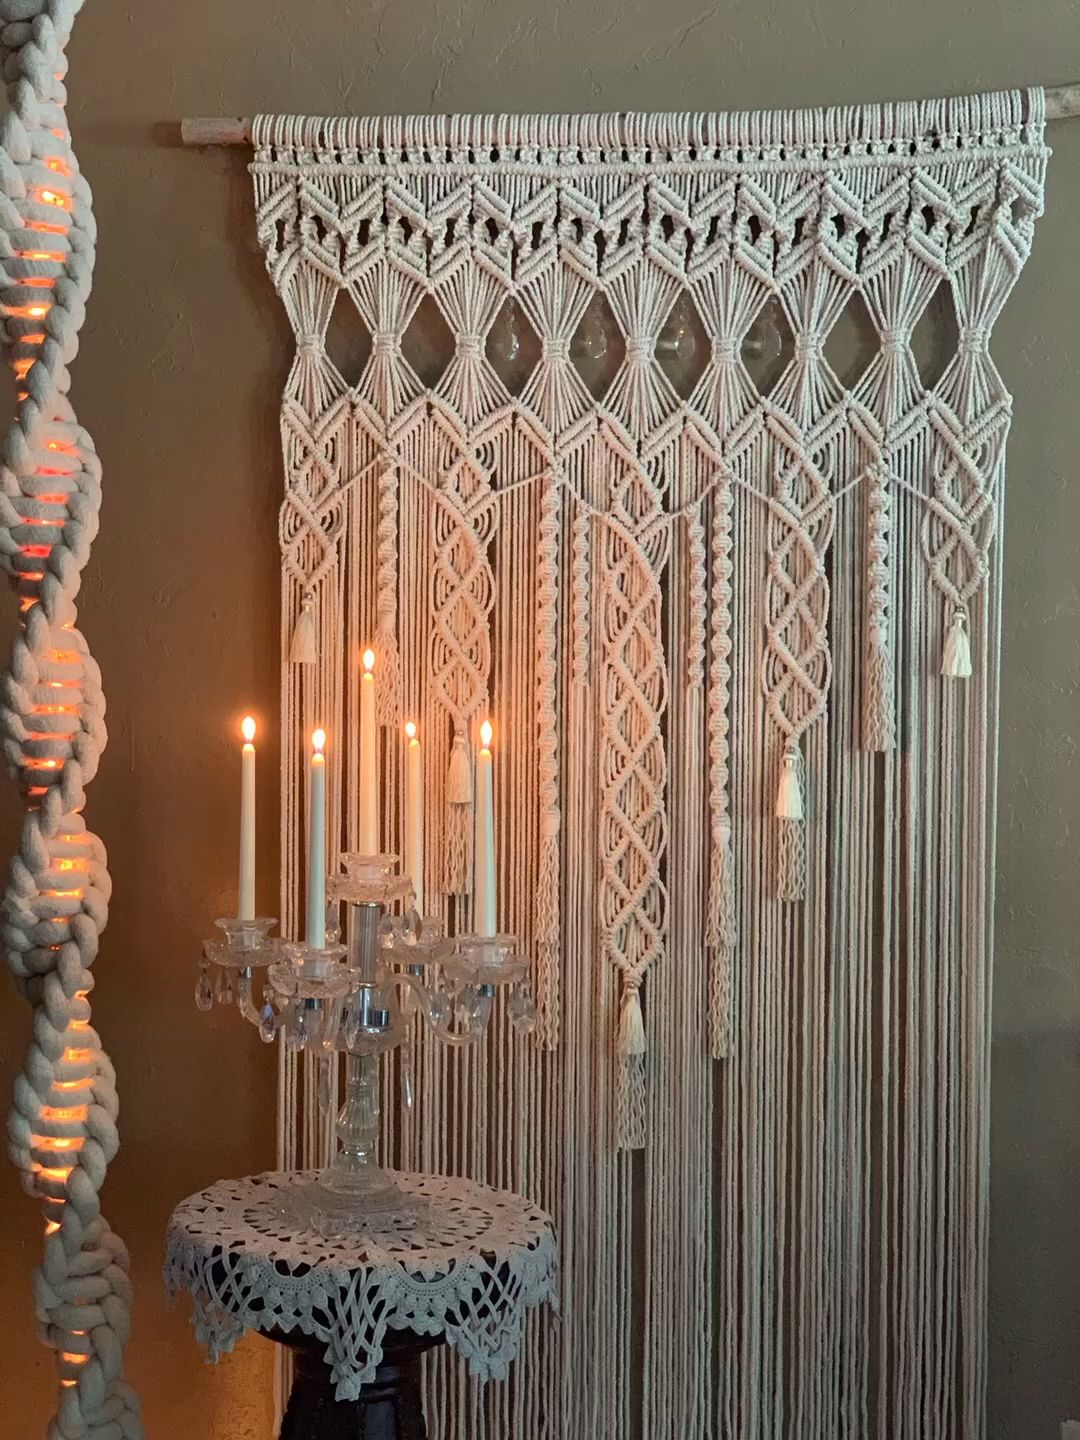 Making of a macrame backdrop  #macrame